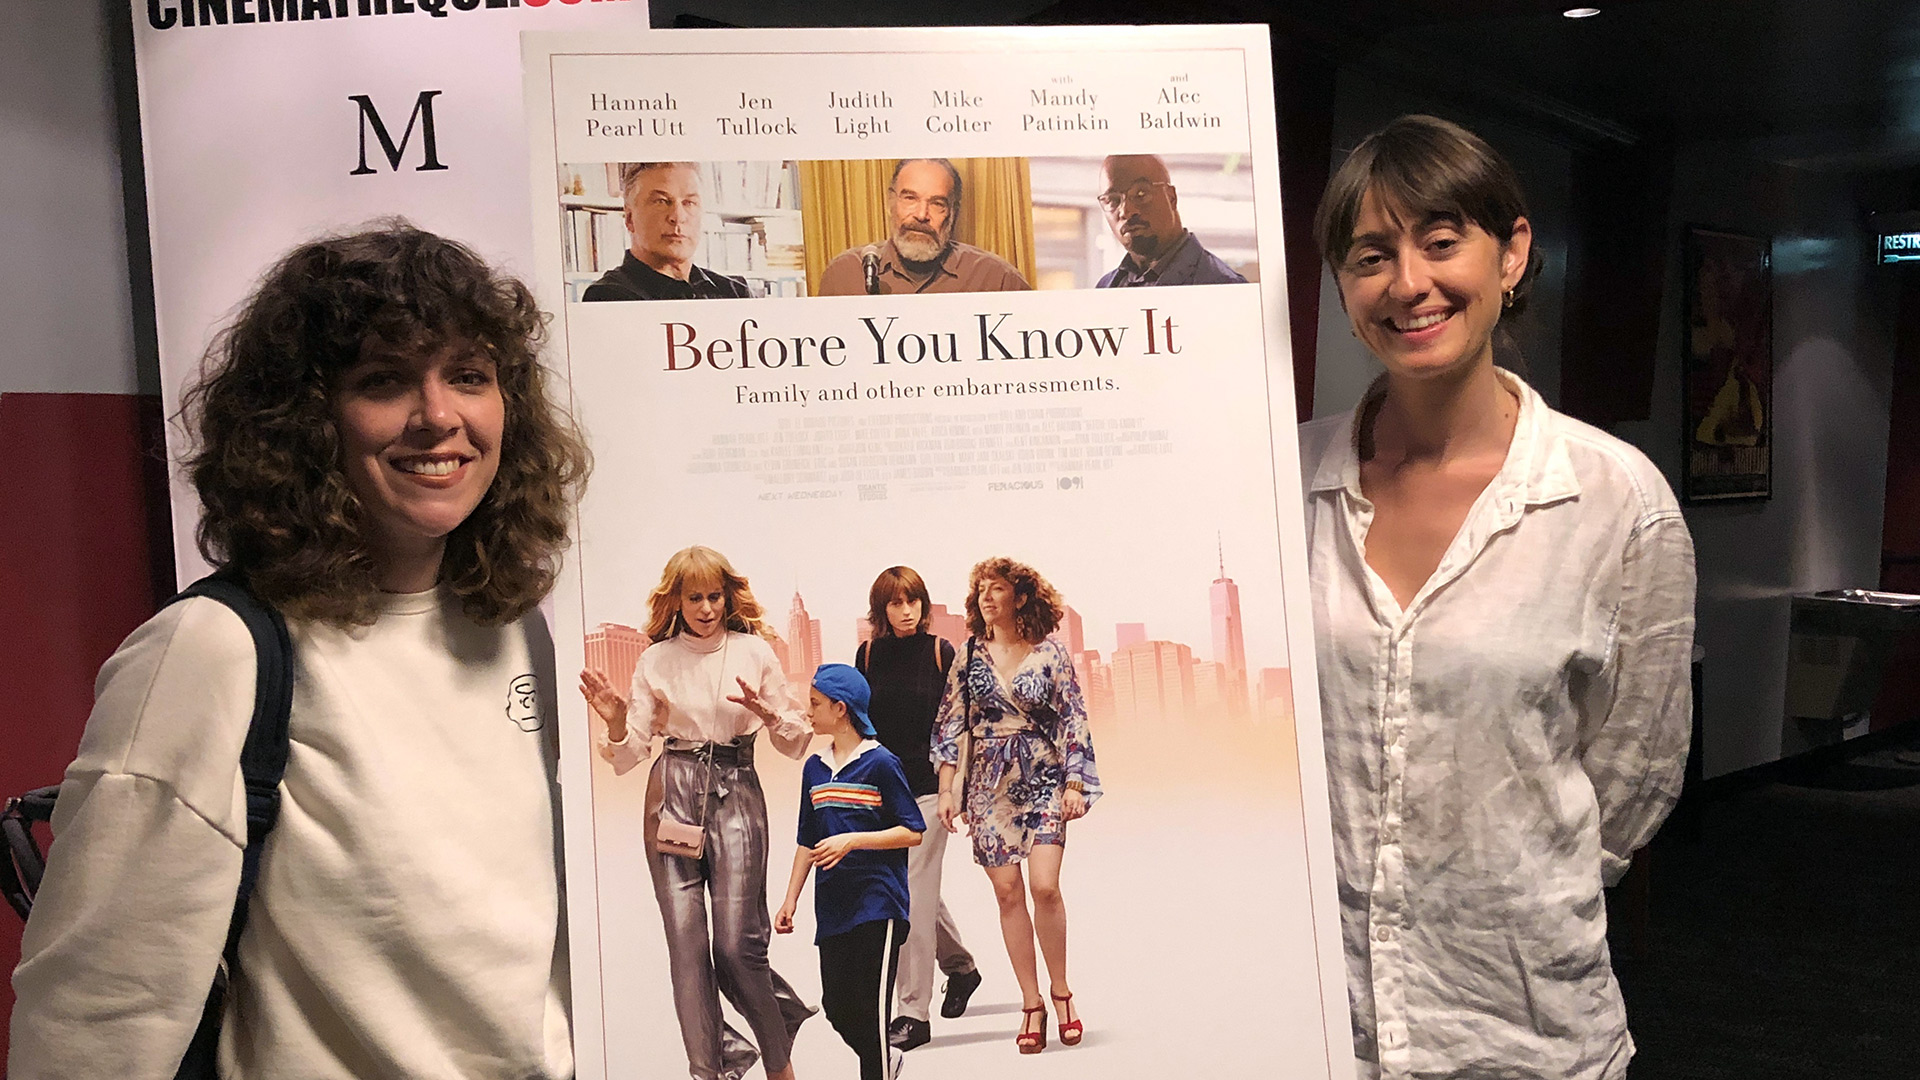 Before You Know It' Screens at the 2019 Fall KCET Cinema